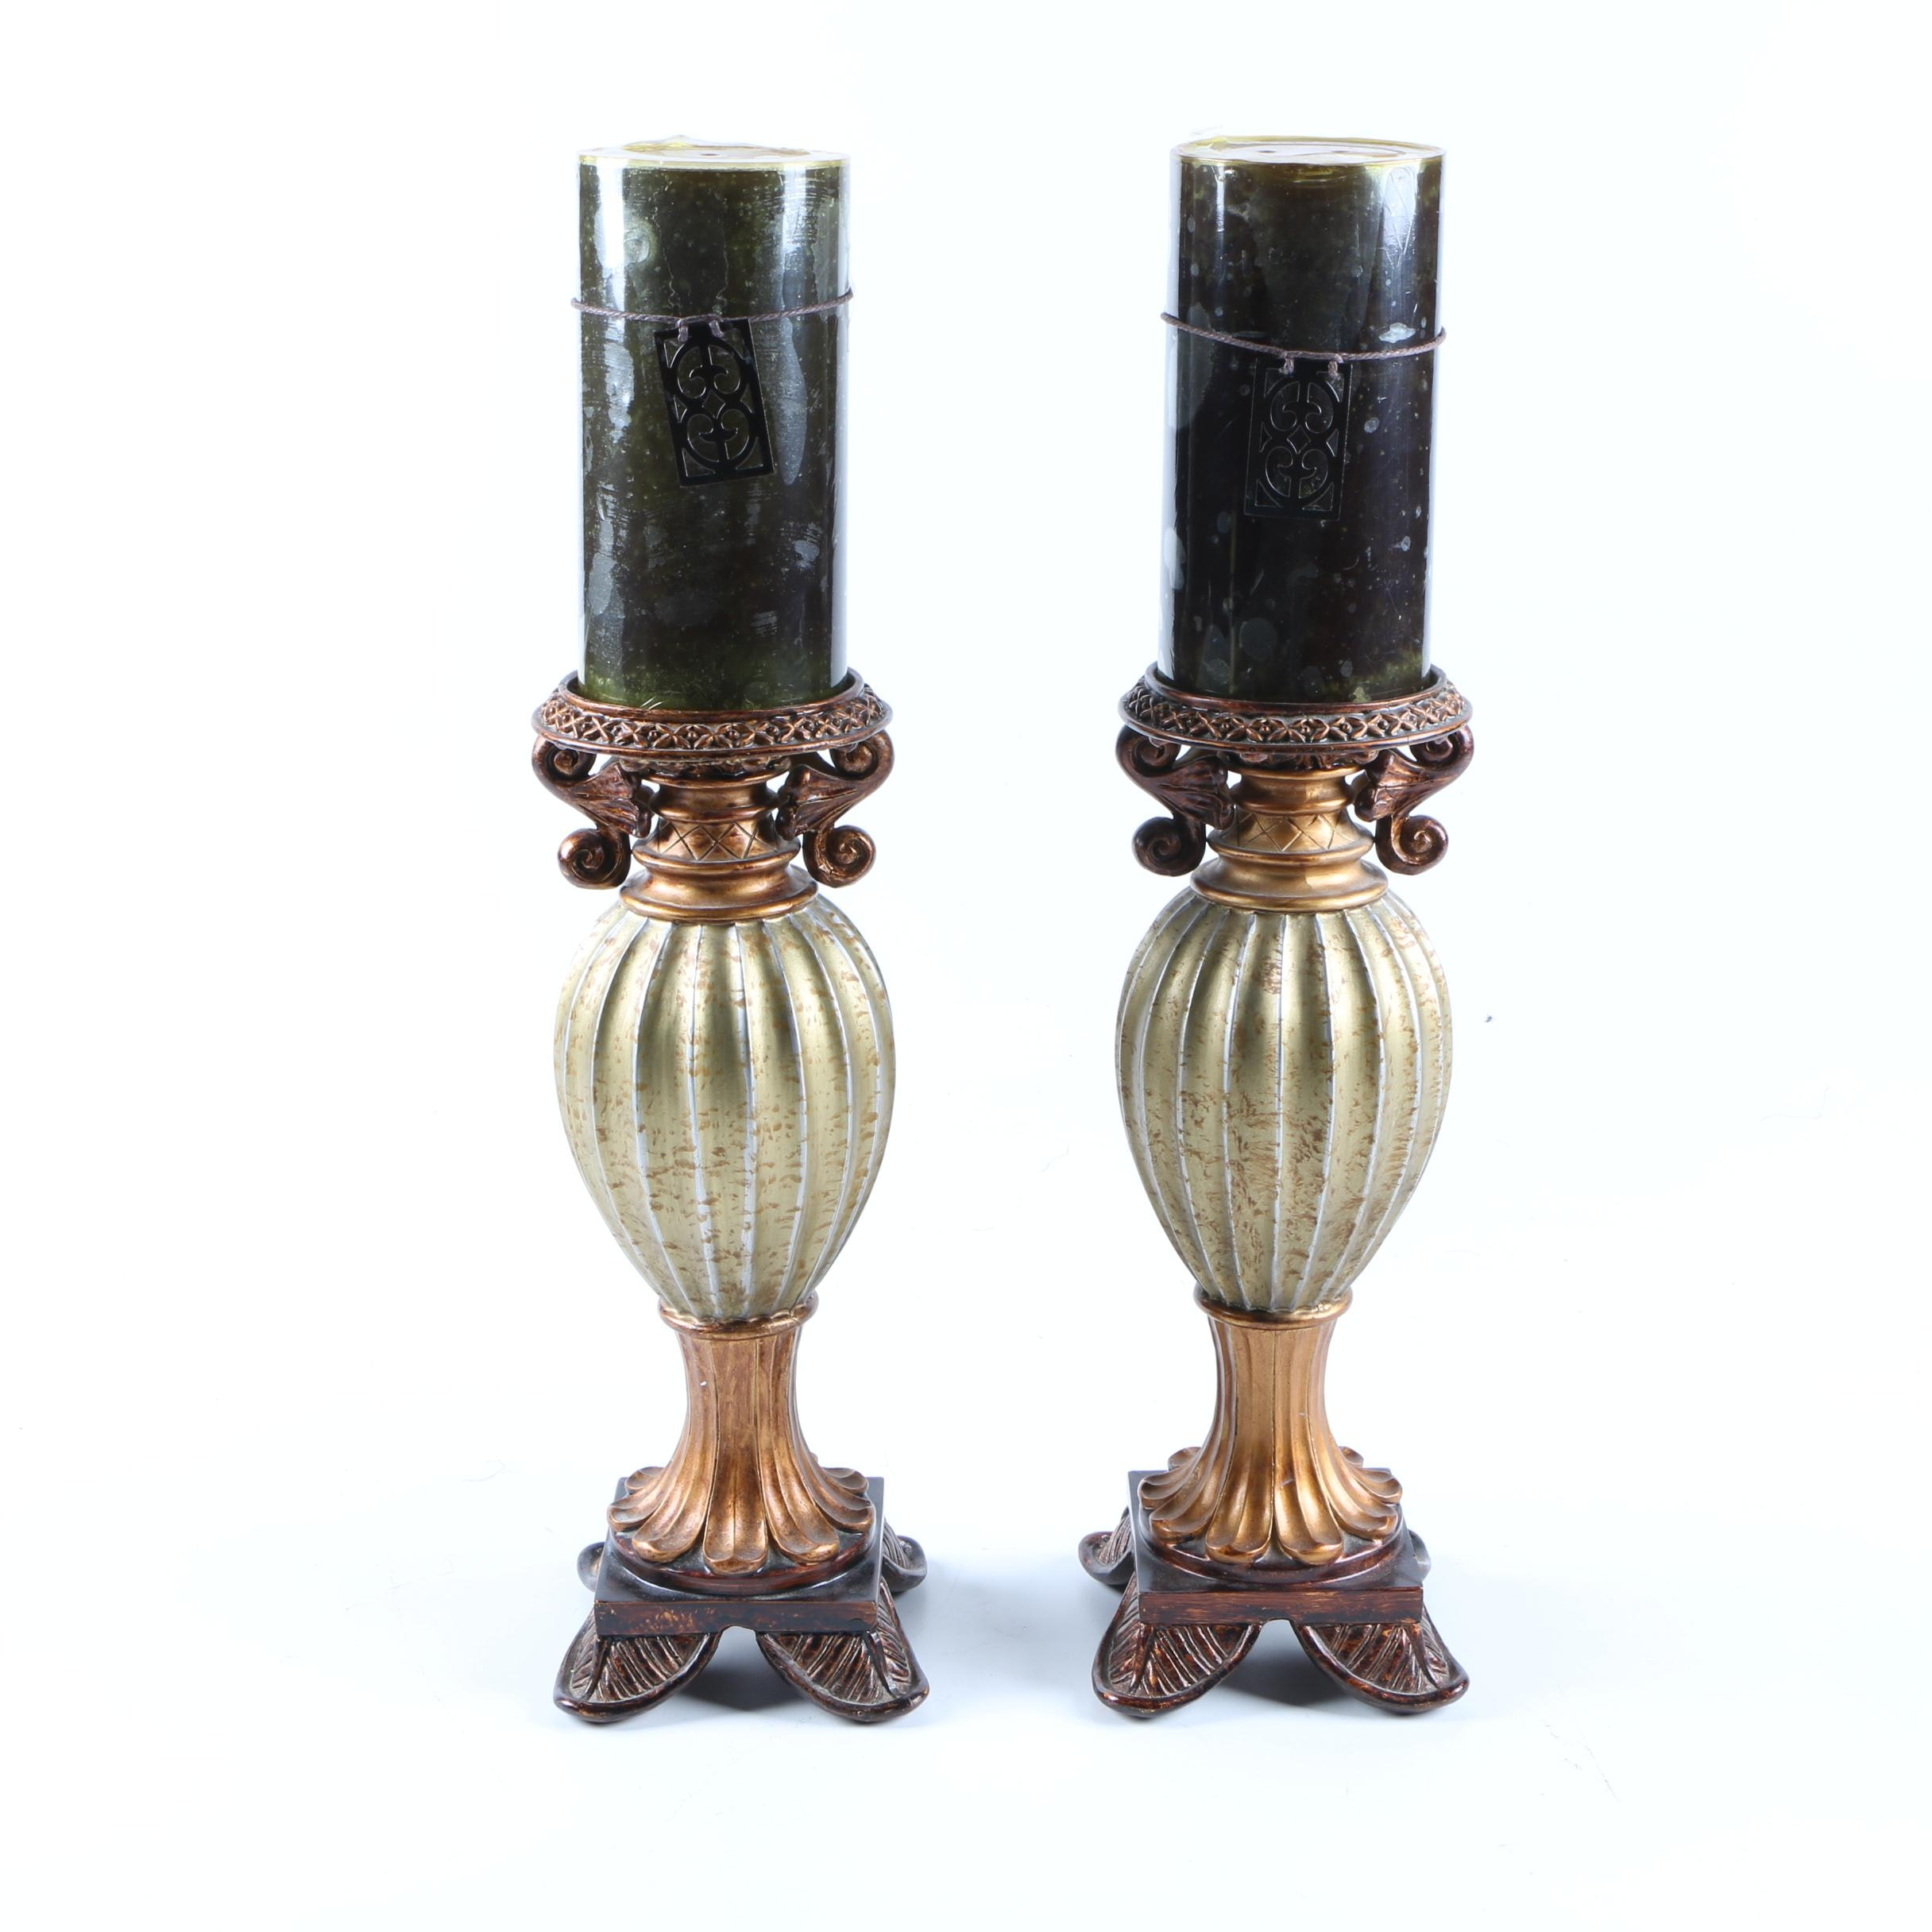 Two Candle Holders With Candles